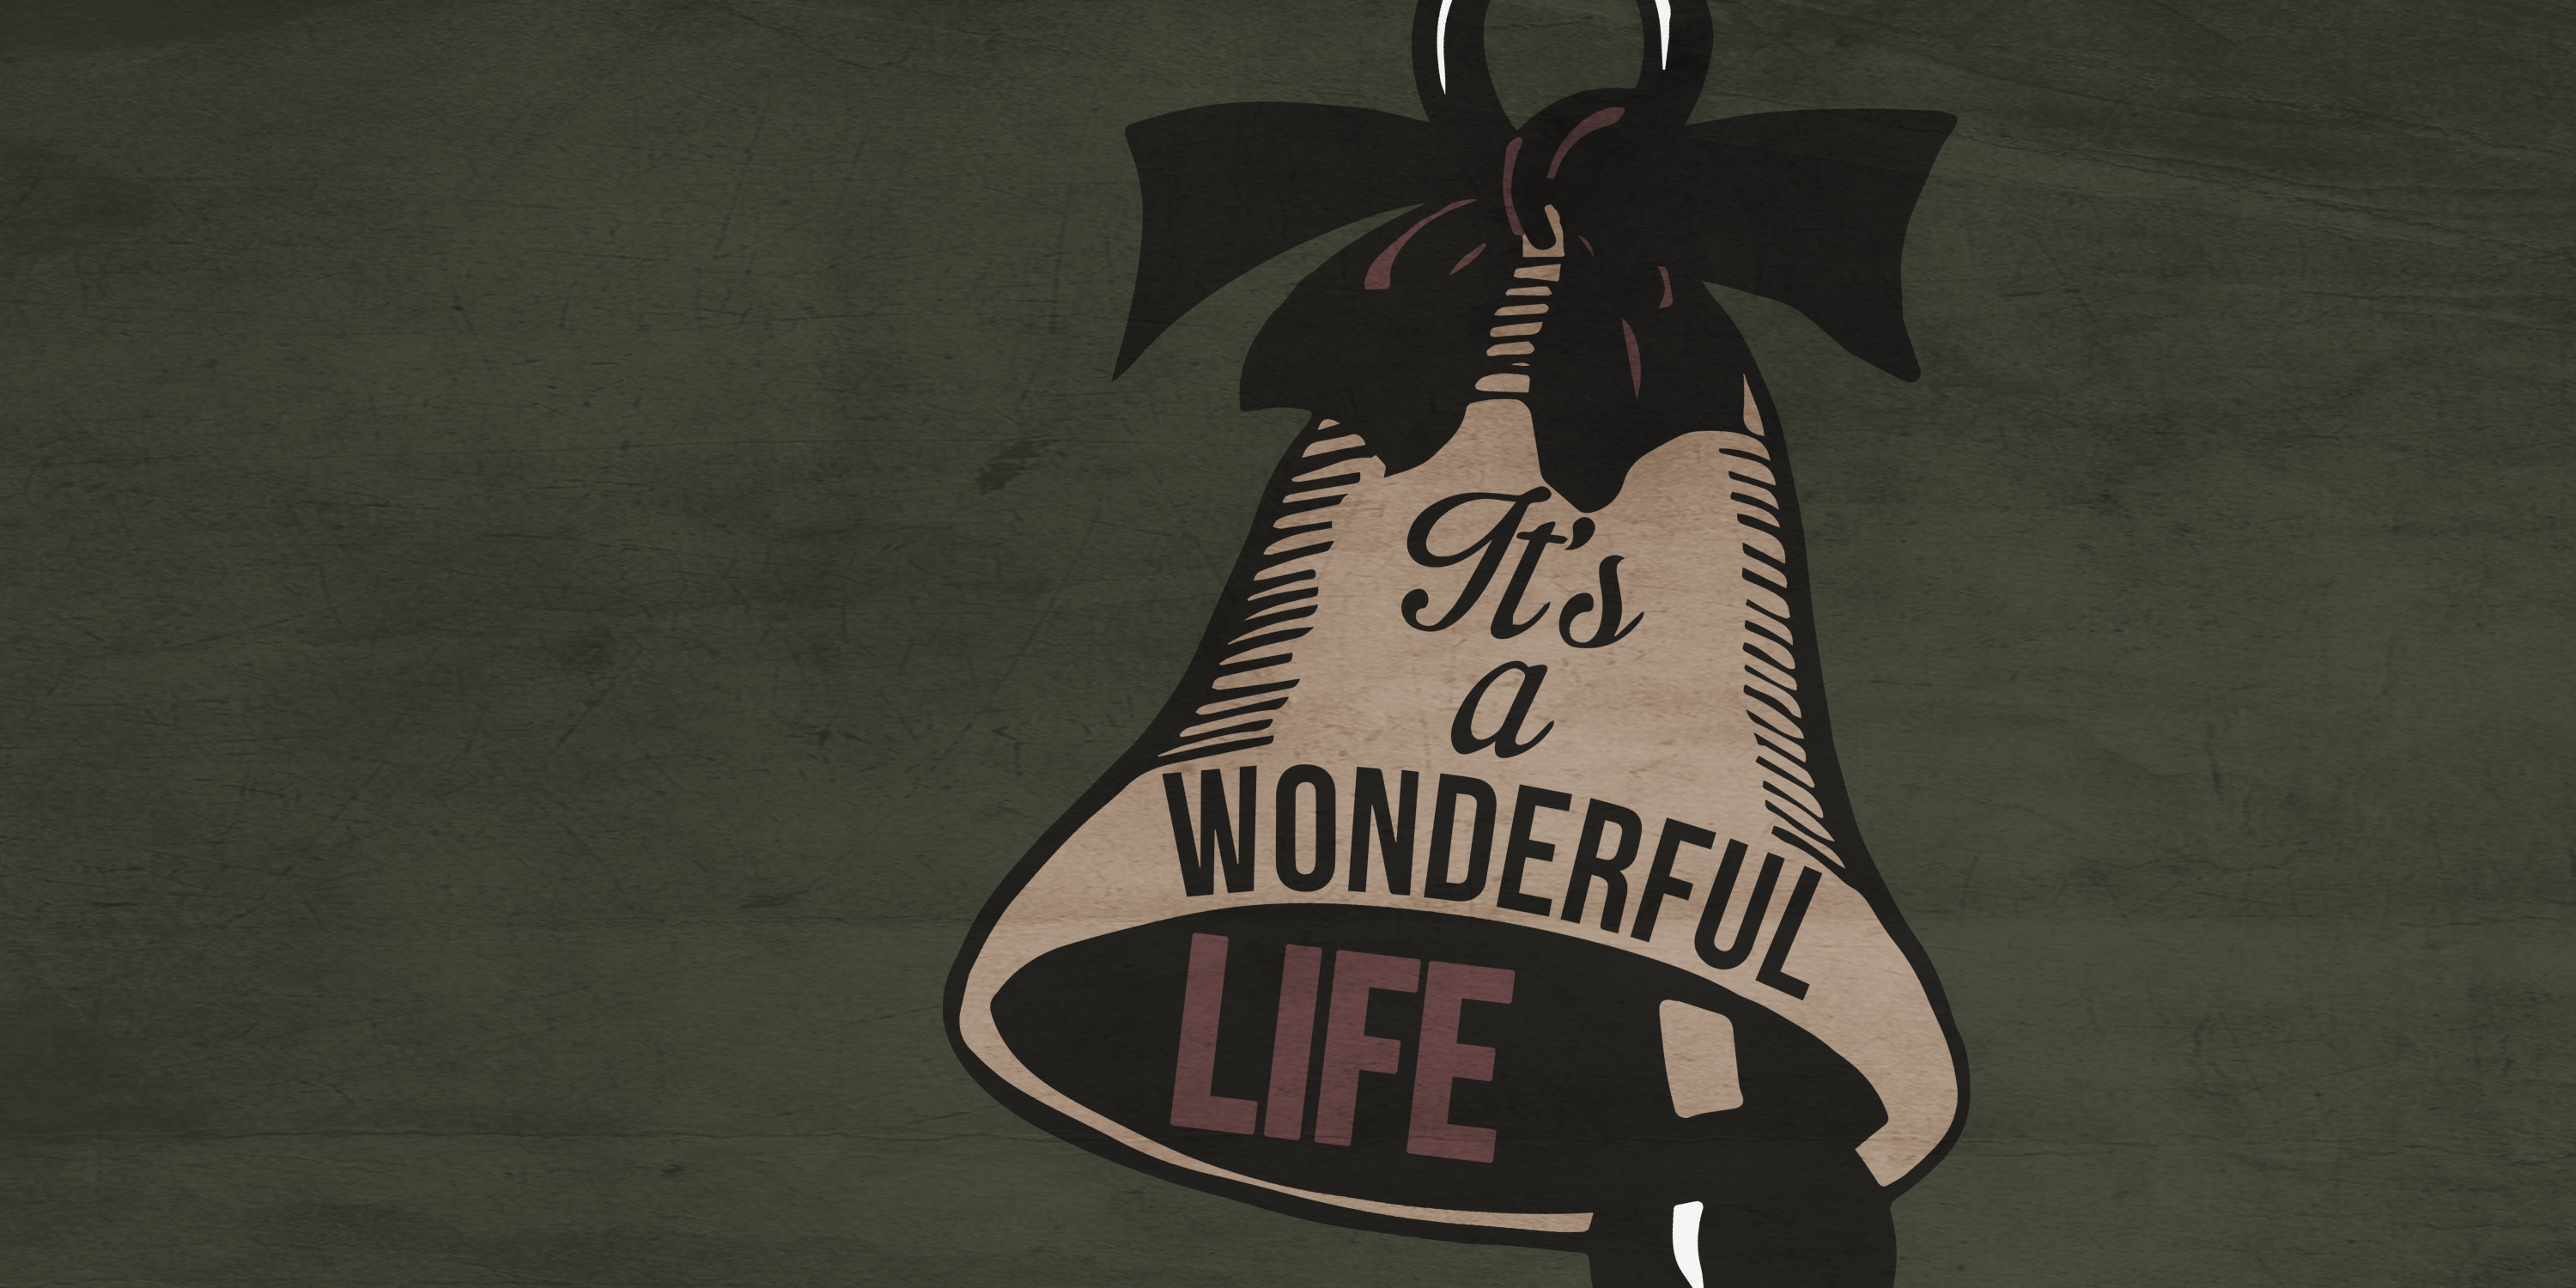 Truly a Wonderful Life For MTS